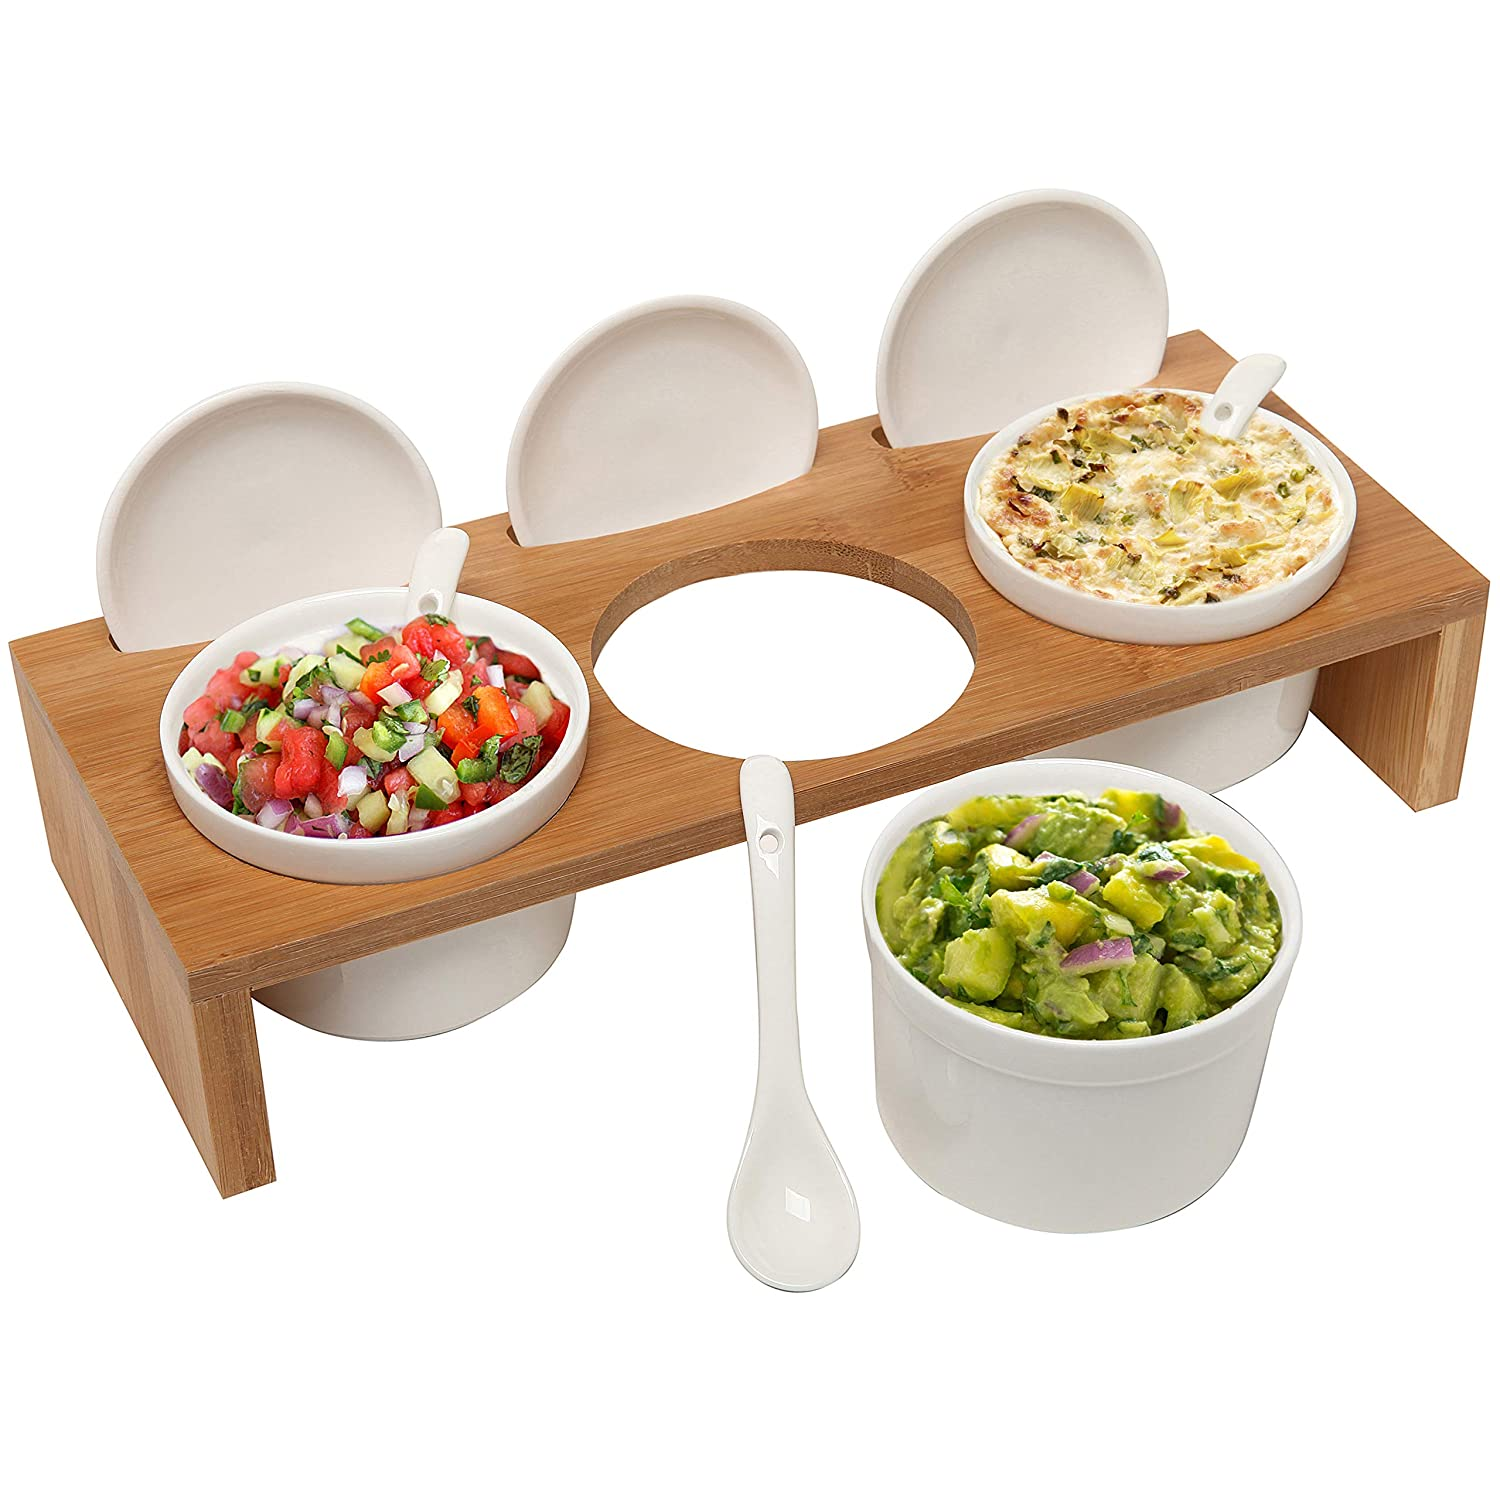 (3 Pcs) 3.5-Inch Ceramic Condiment Dip Sauce Ramekins Set w/ Lids & Spoons on Bamboo Sampler Serving Tray MyGift COMINHKPR75595